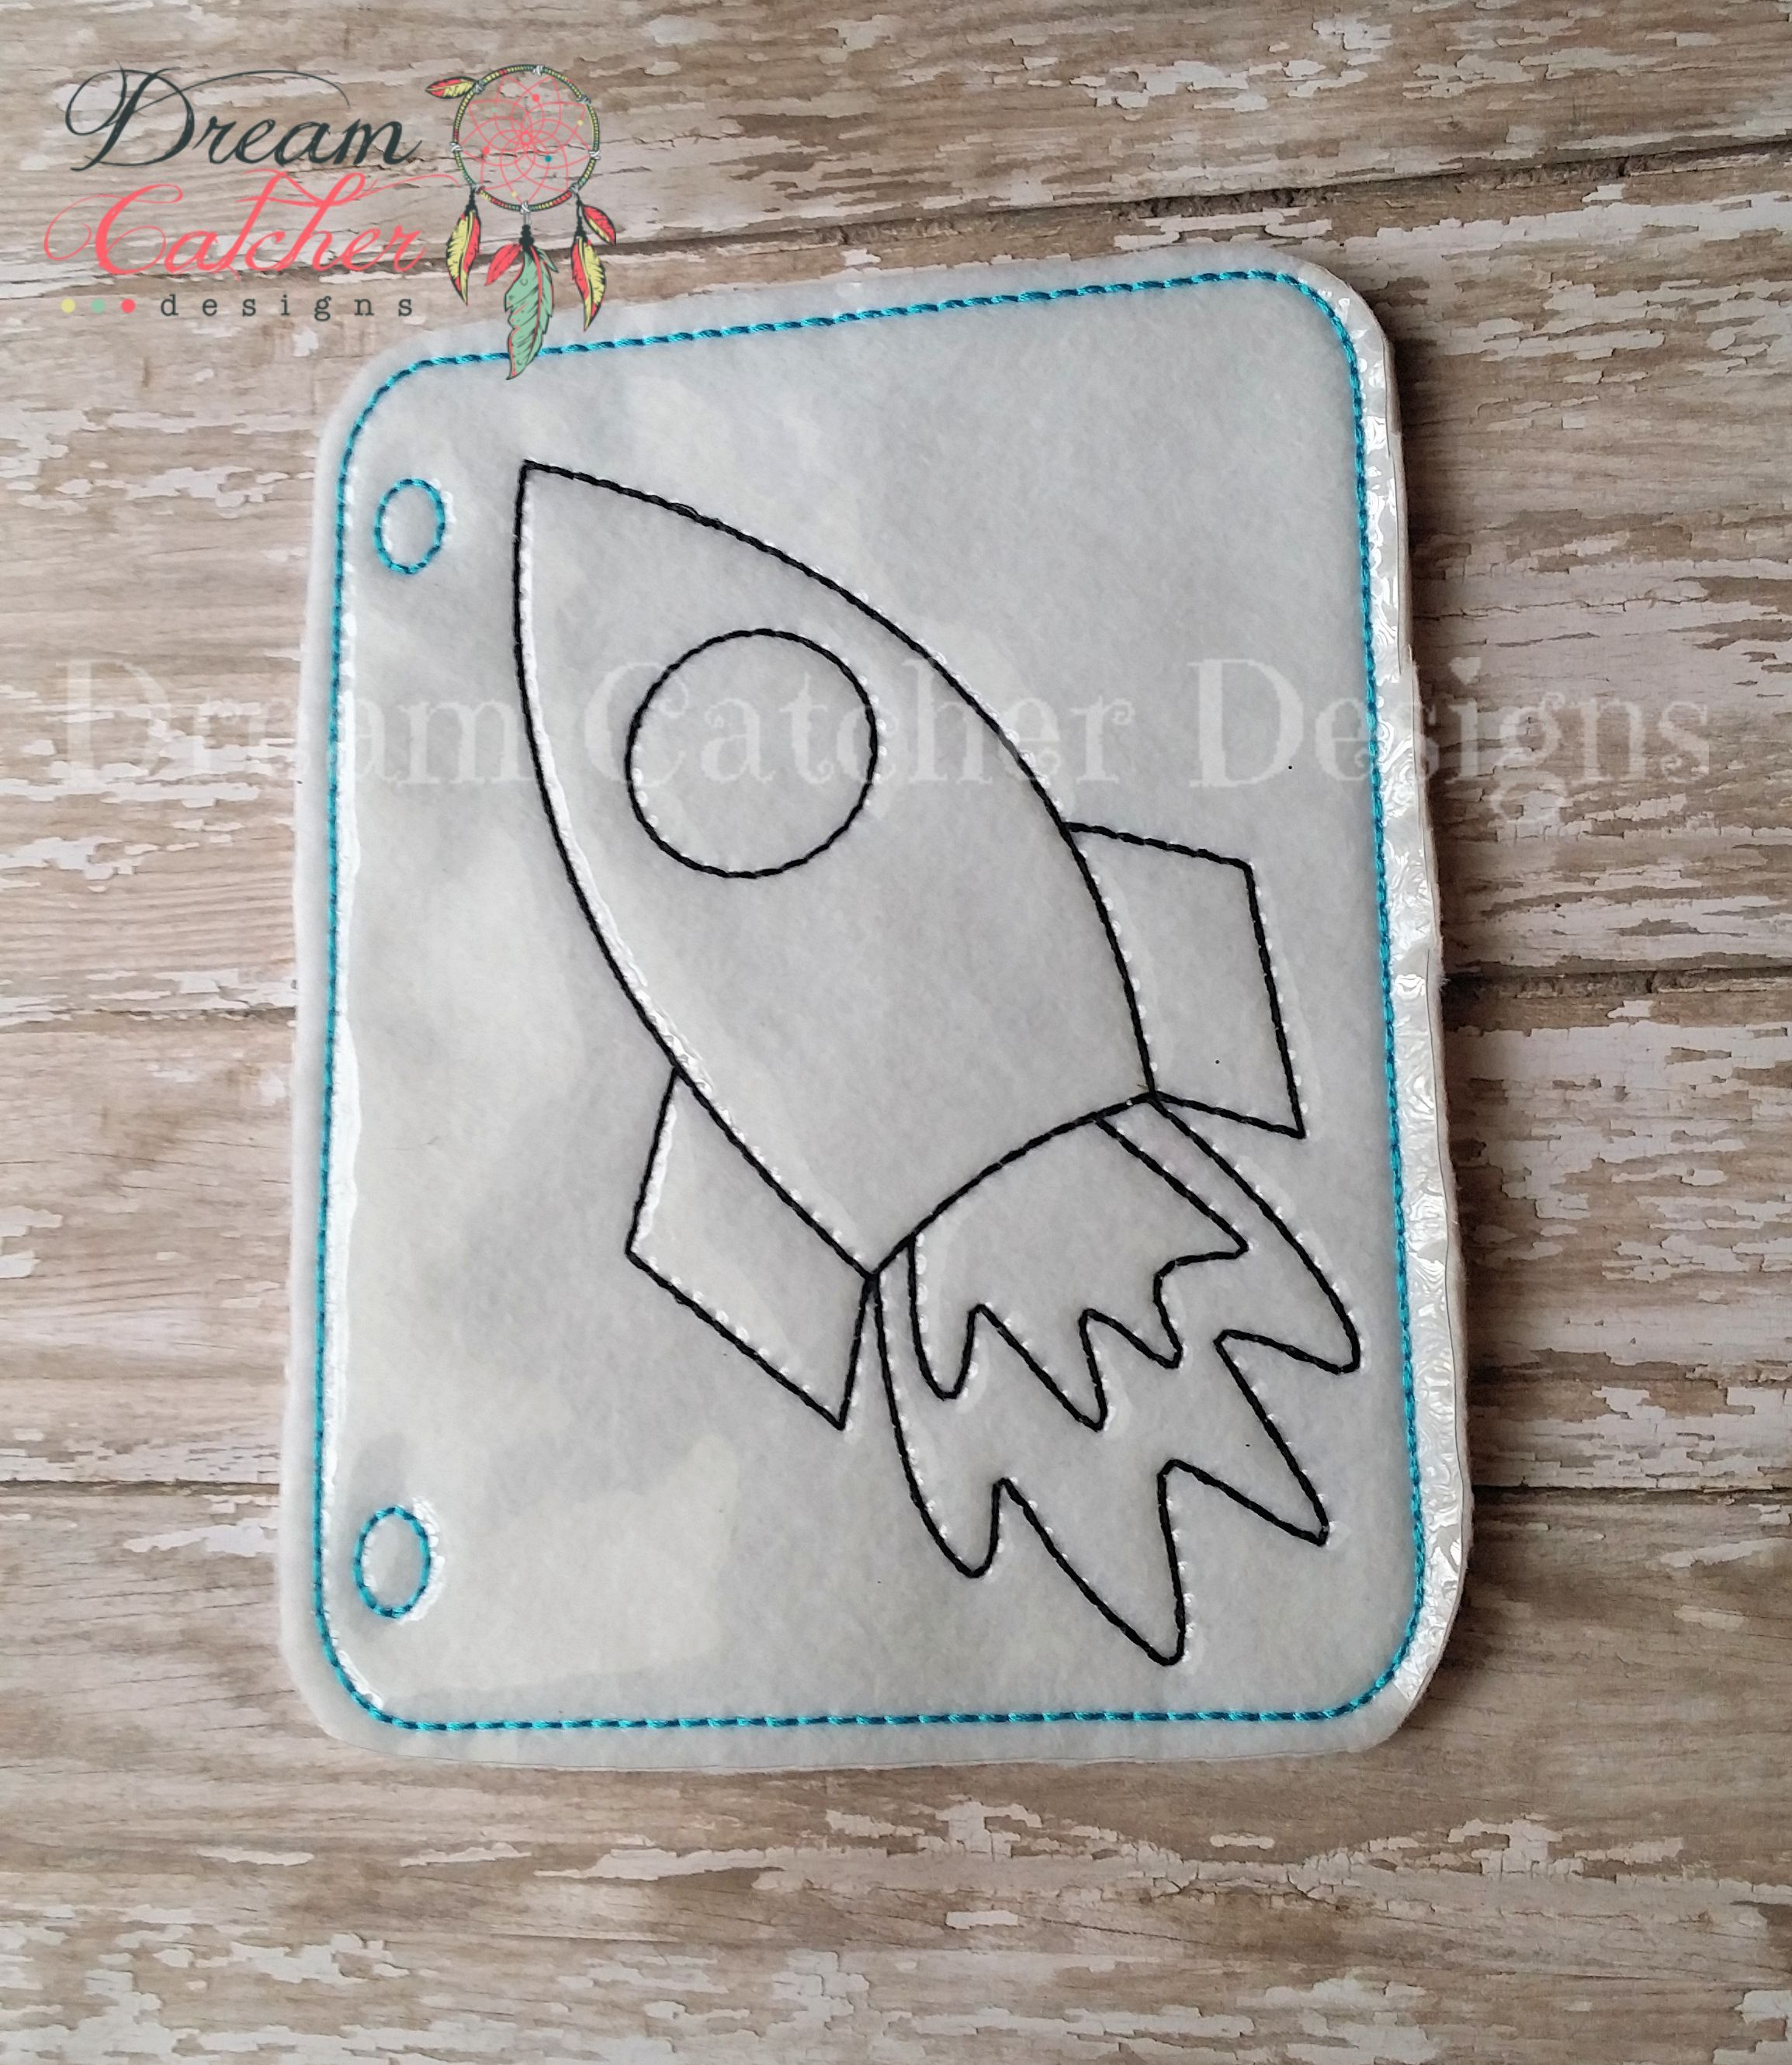 In the hoop rocket ship coloring page embroidery design